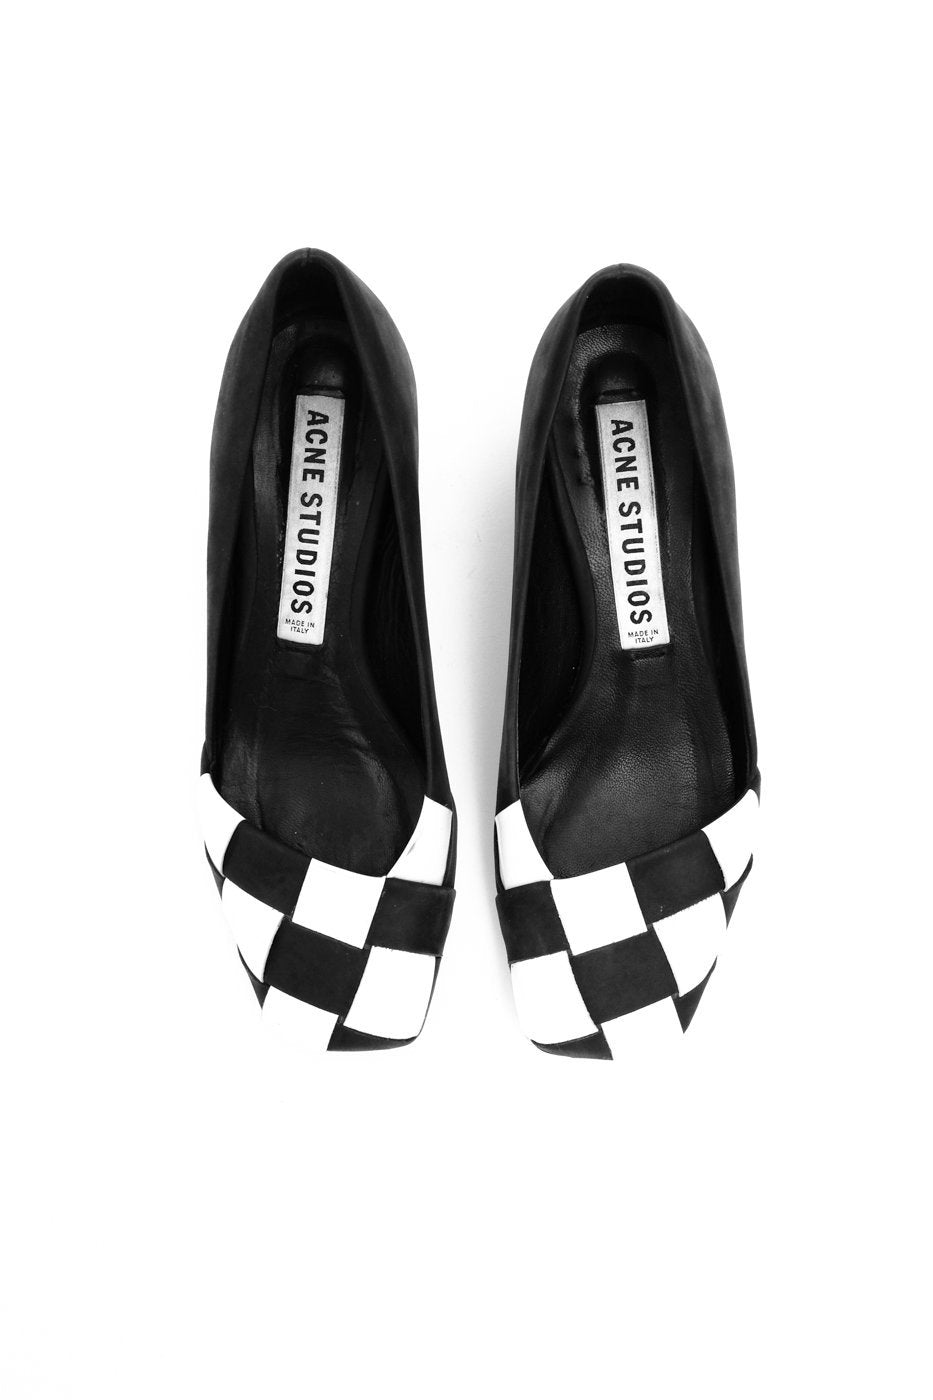 0480_ACNE STUDIOS SQUARED 37 PUMPS